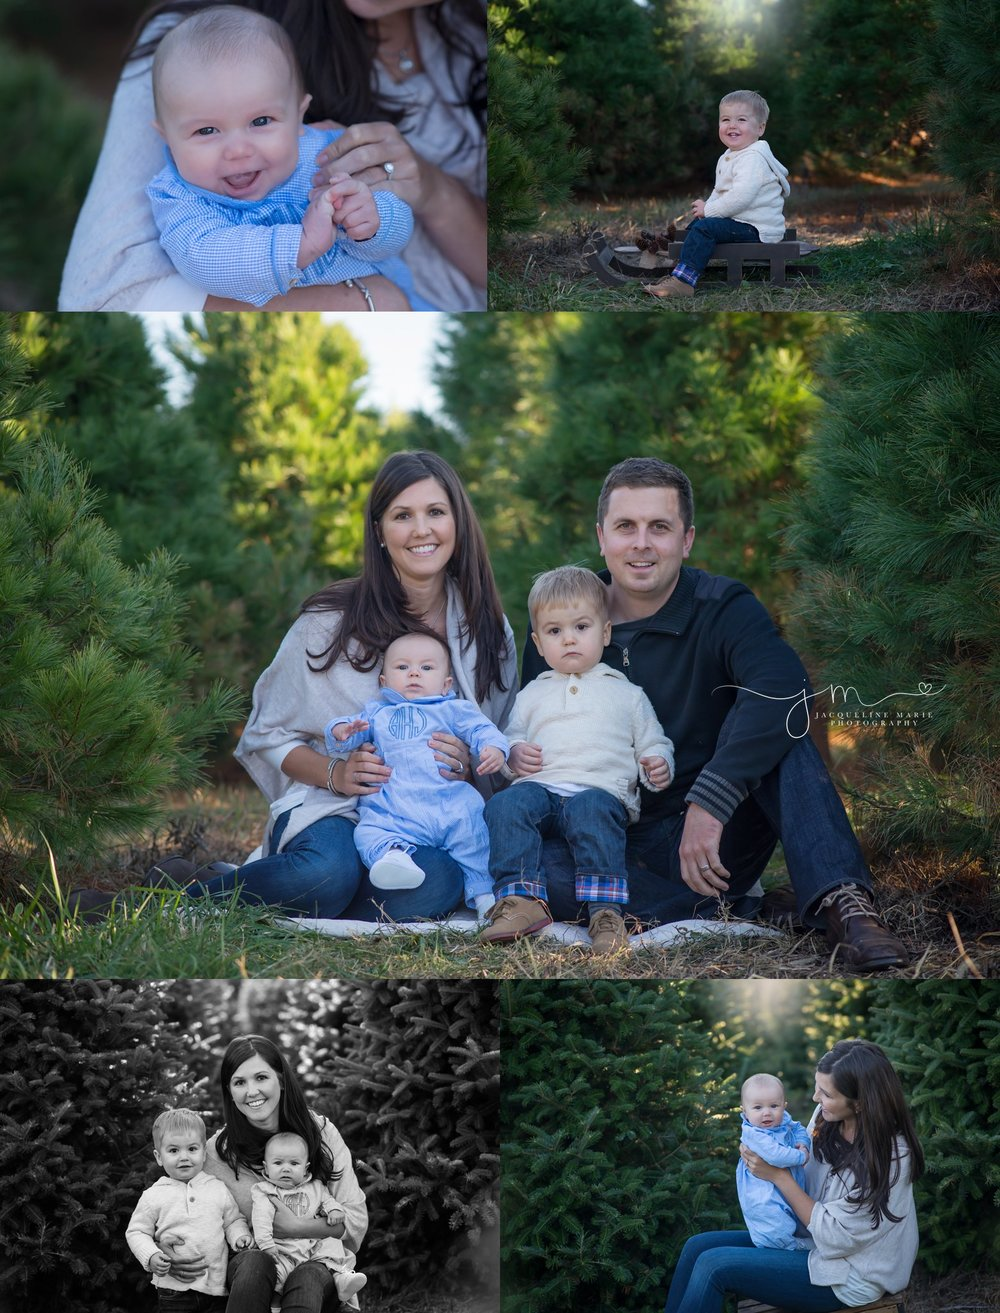 family photography Columbus Ohio, Columbus Ohio family photographer, Christmas tree farm photography